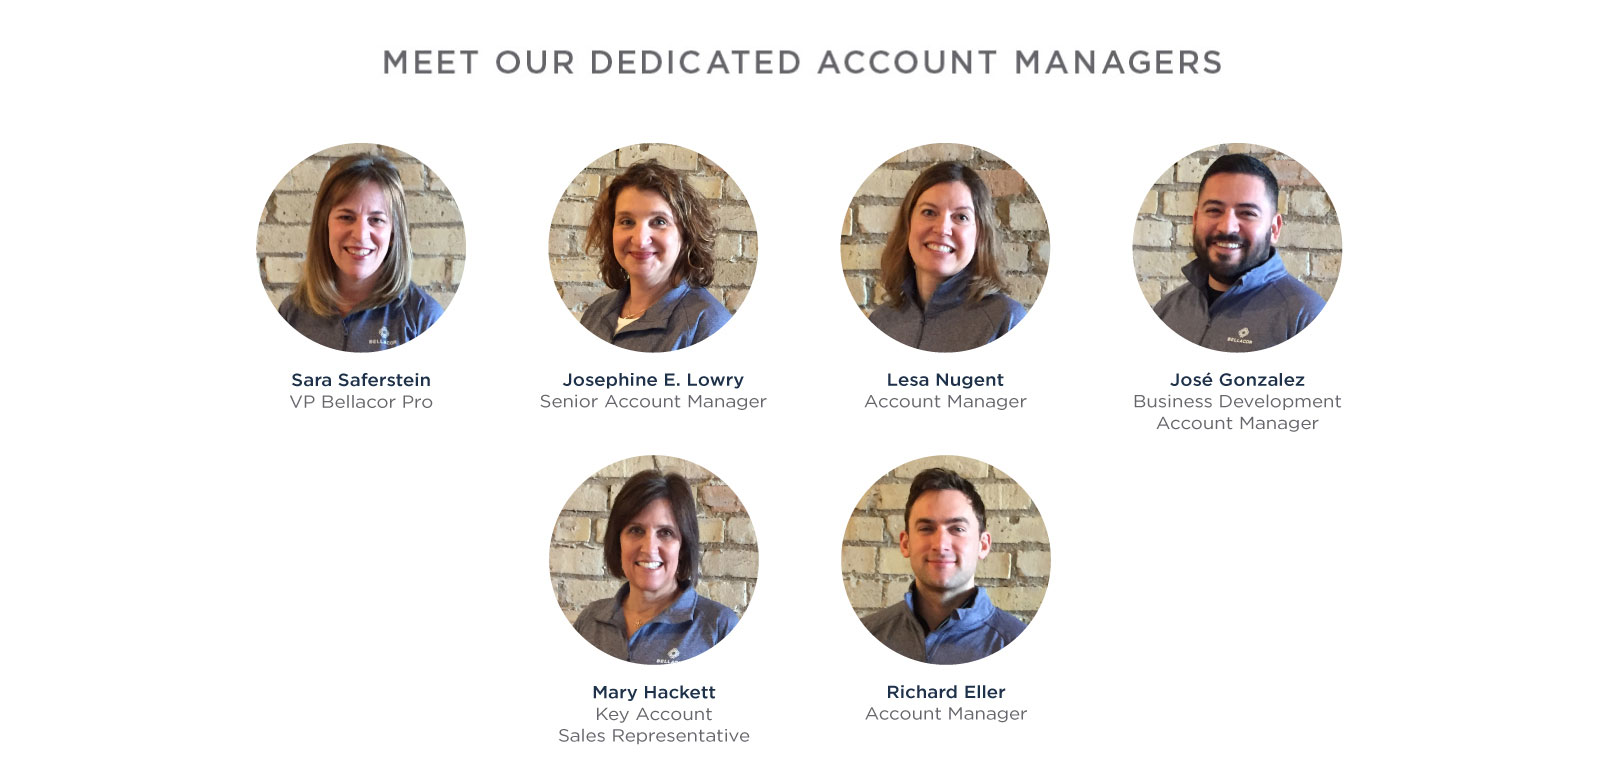 PRO Team of Dedicated Account Managers